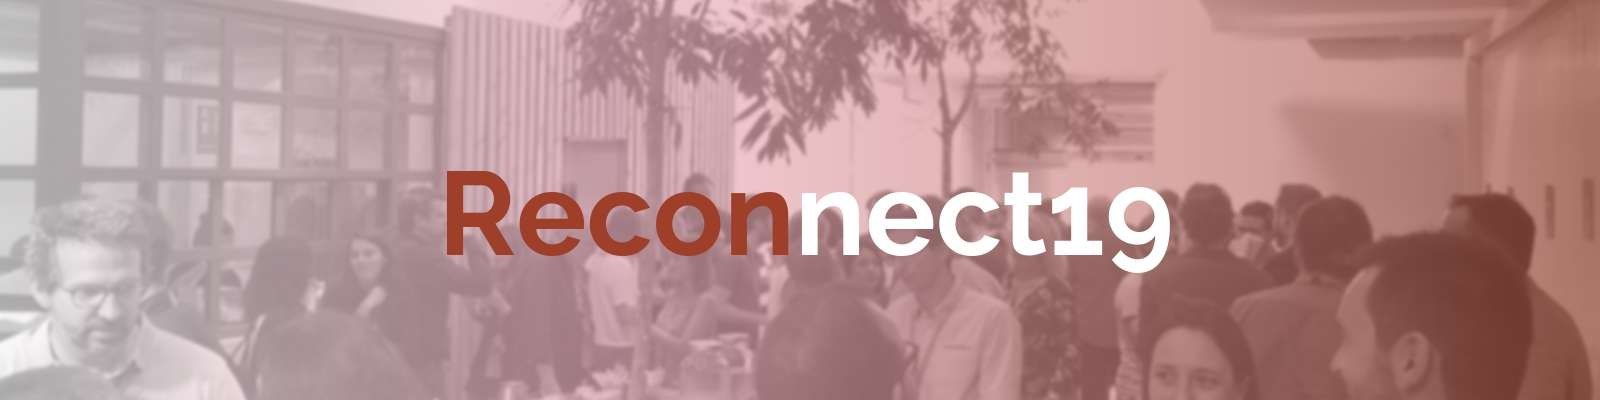 Reconnect19 elogia selligent evento